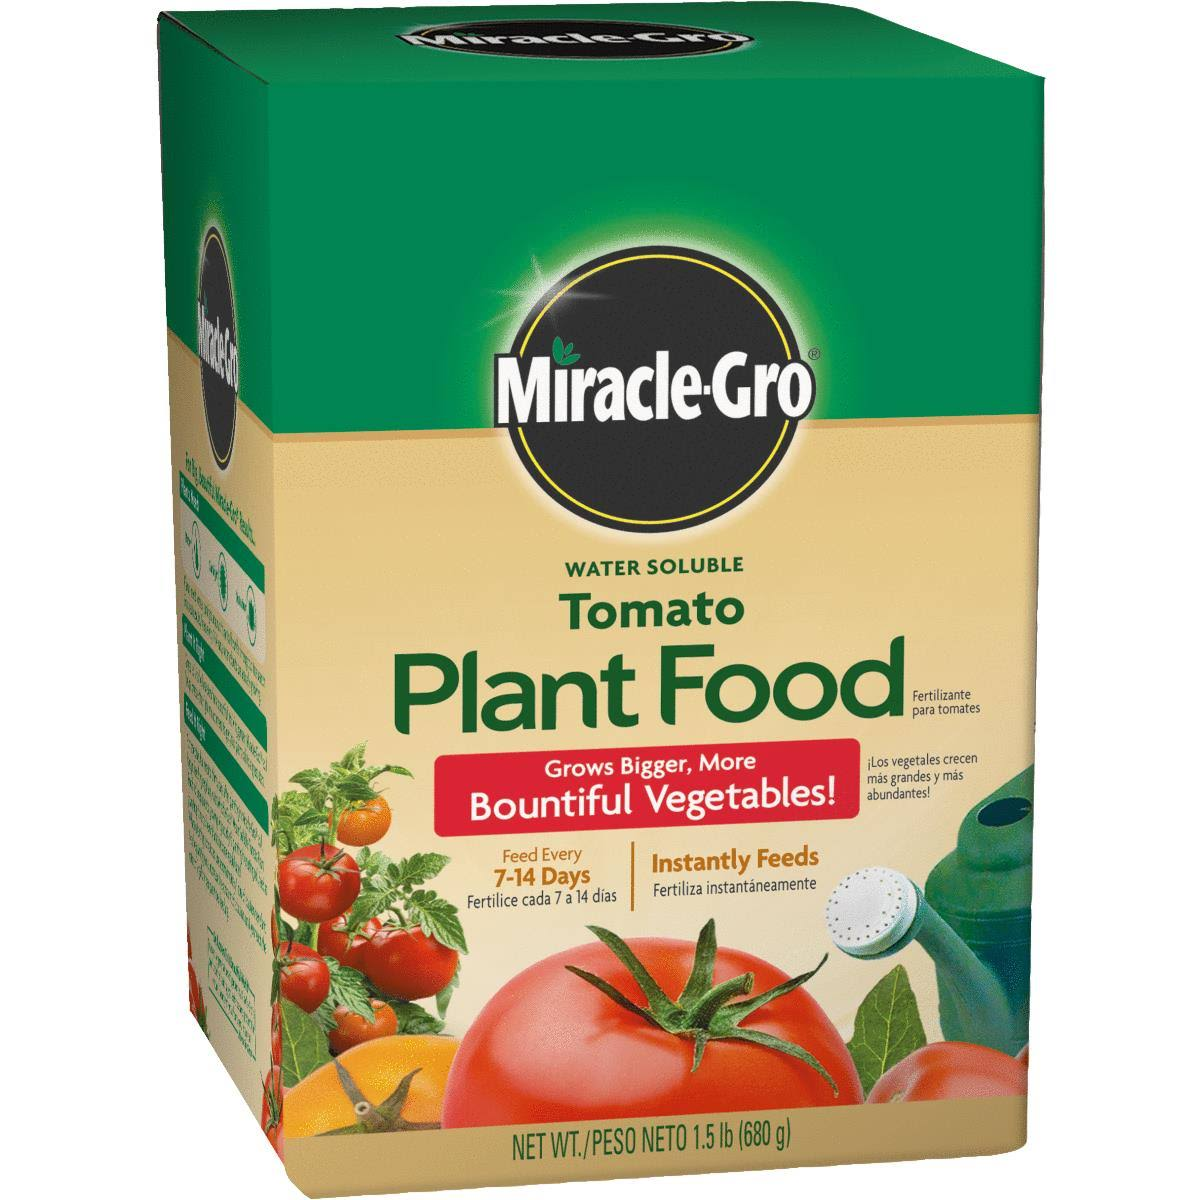 Miracle-Gro Tomato Plant Food - 1.5lb